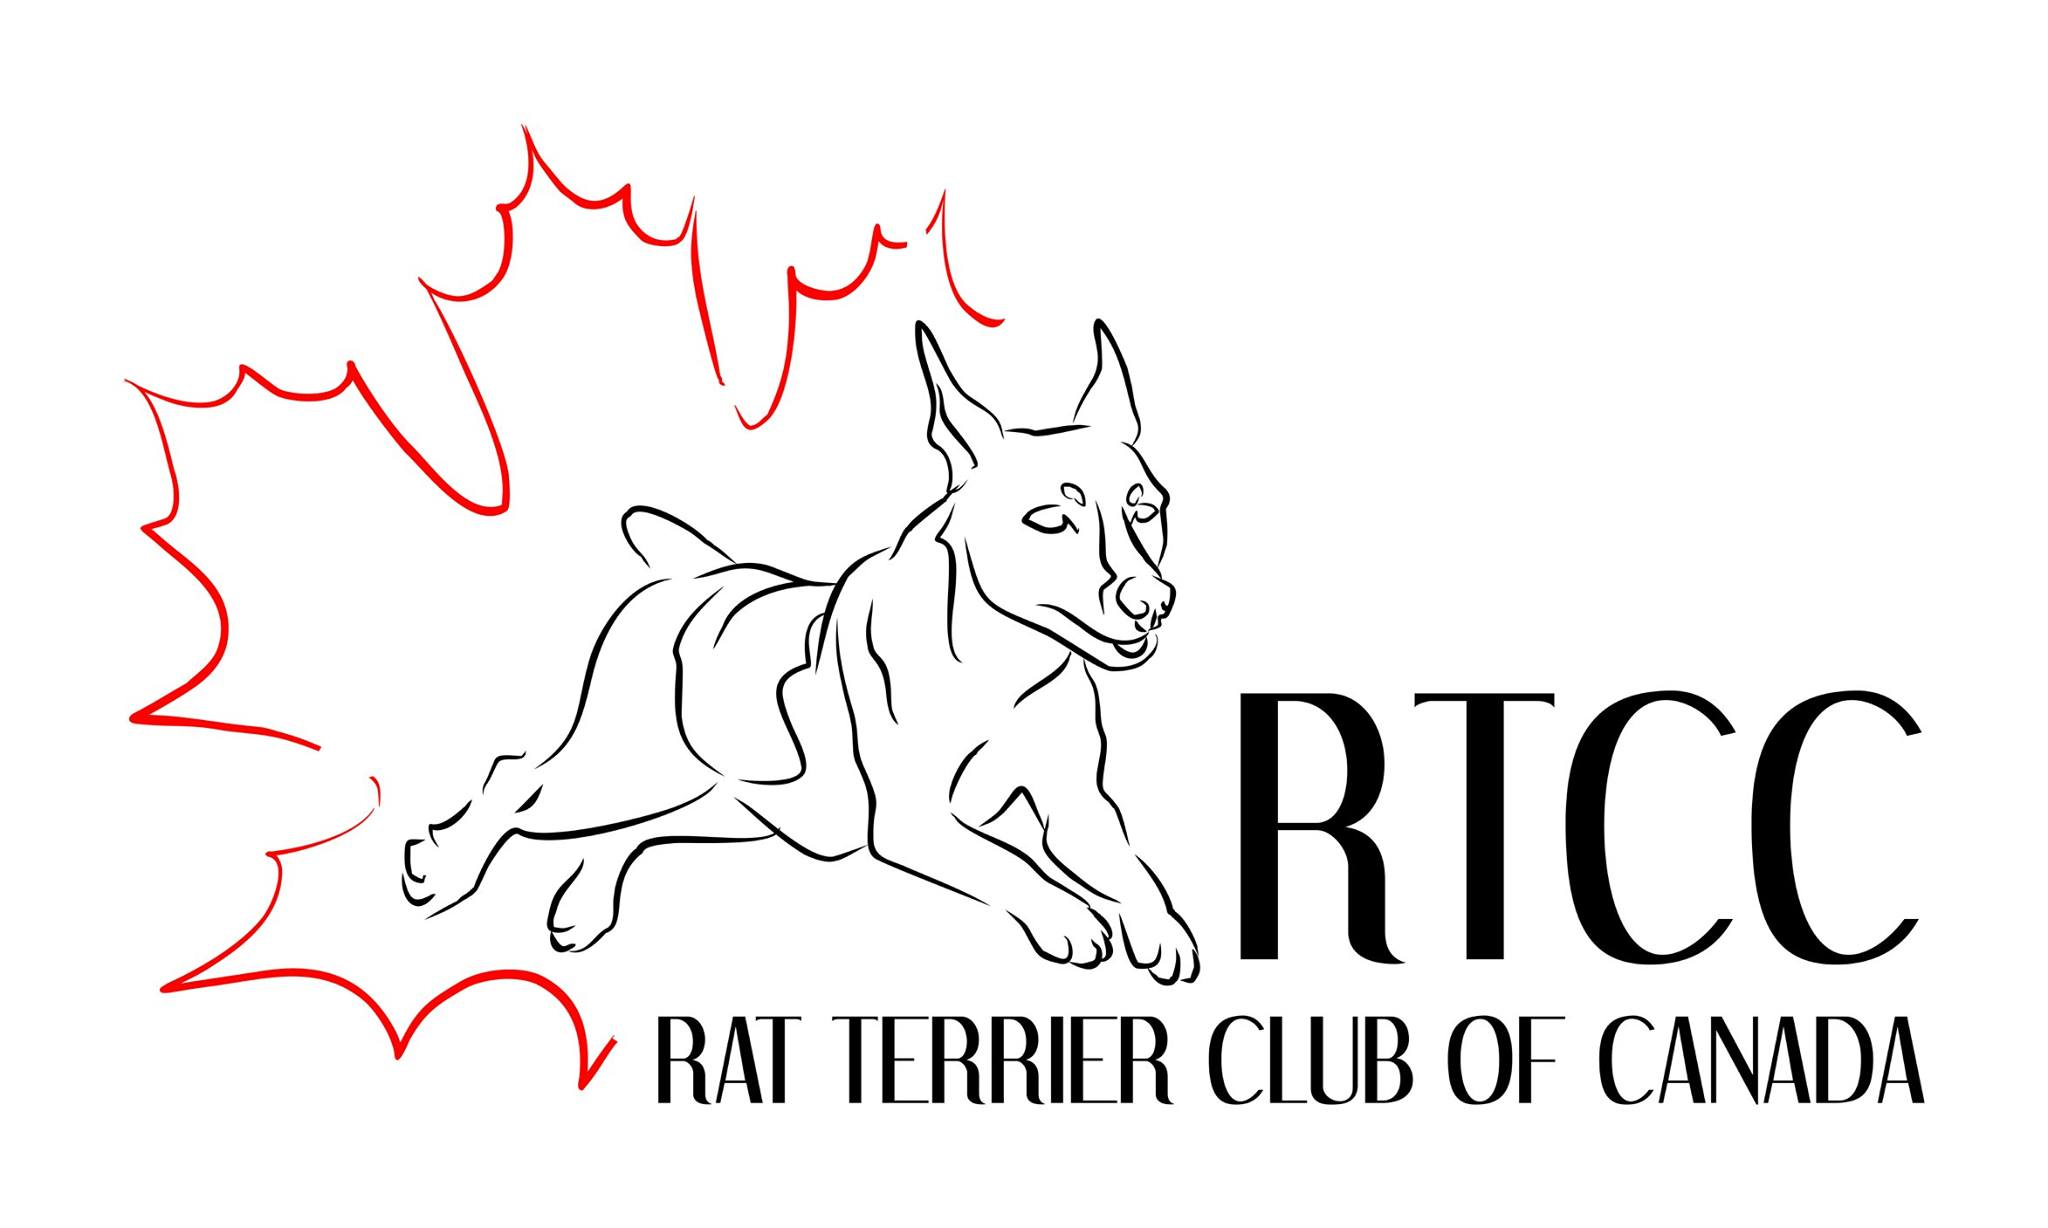 Rat Terrier Club of Canada